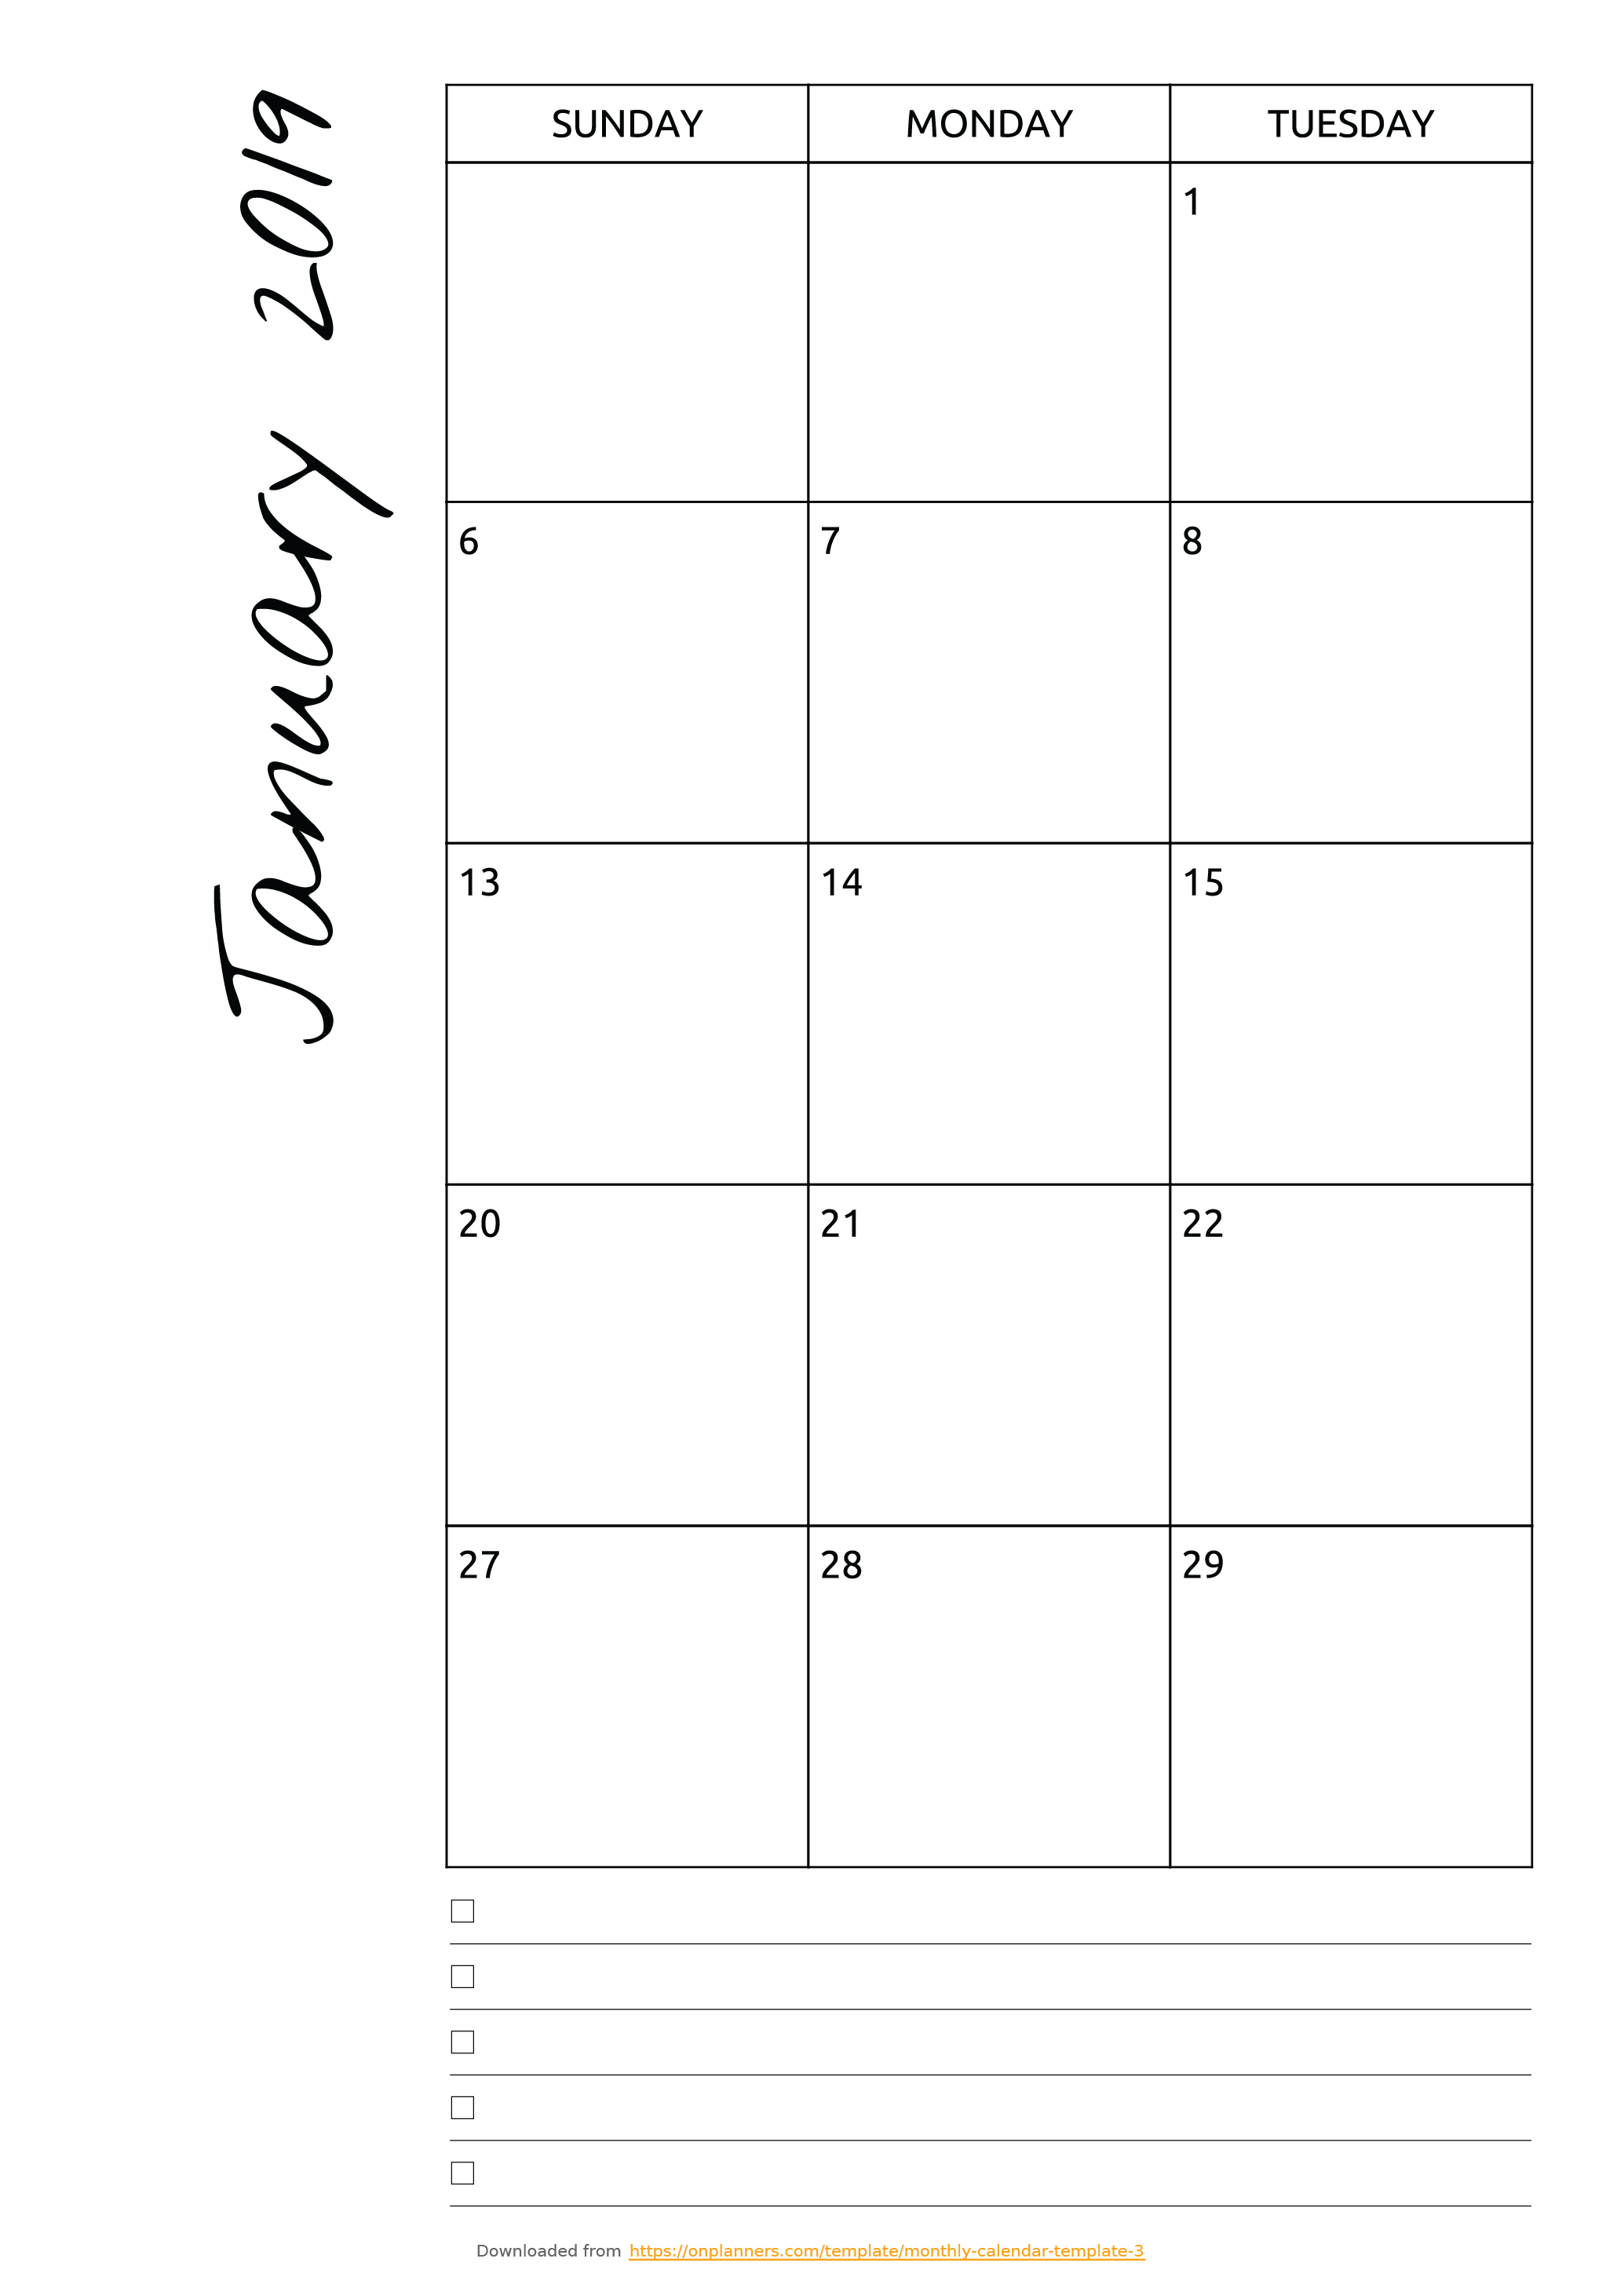 Free Printable Monthly Calendar With Notes Pdf Download within Free Monthly Calendar Template